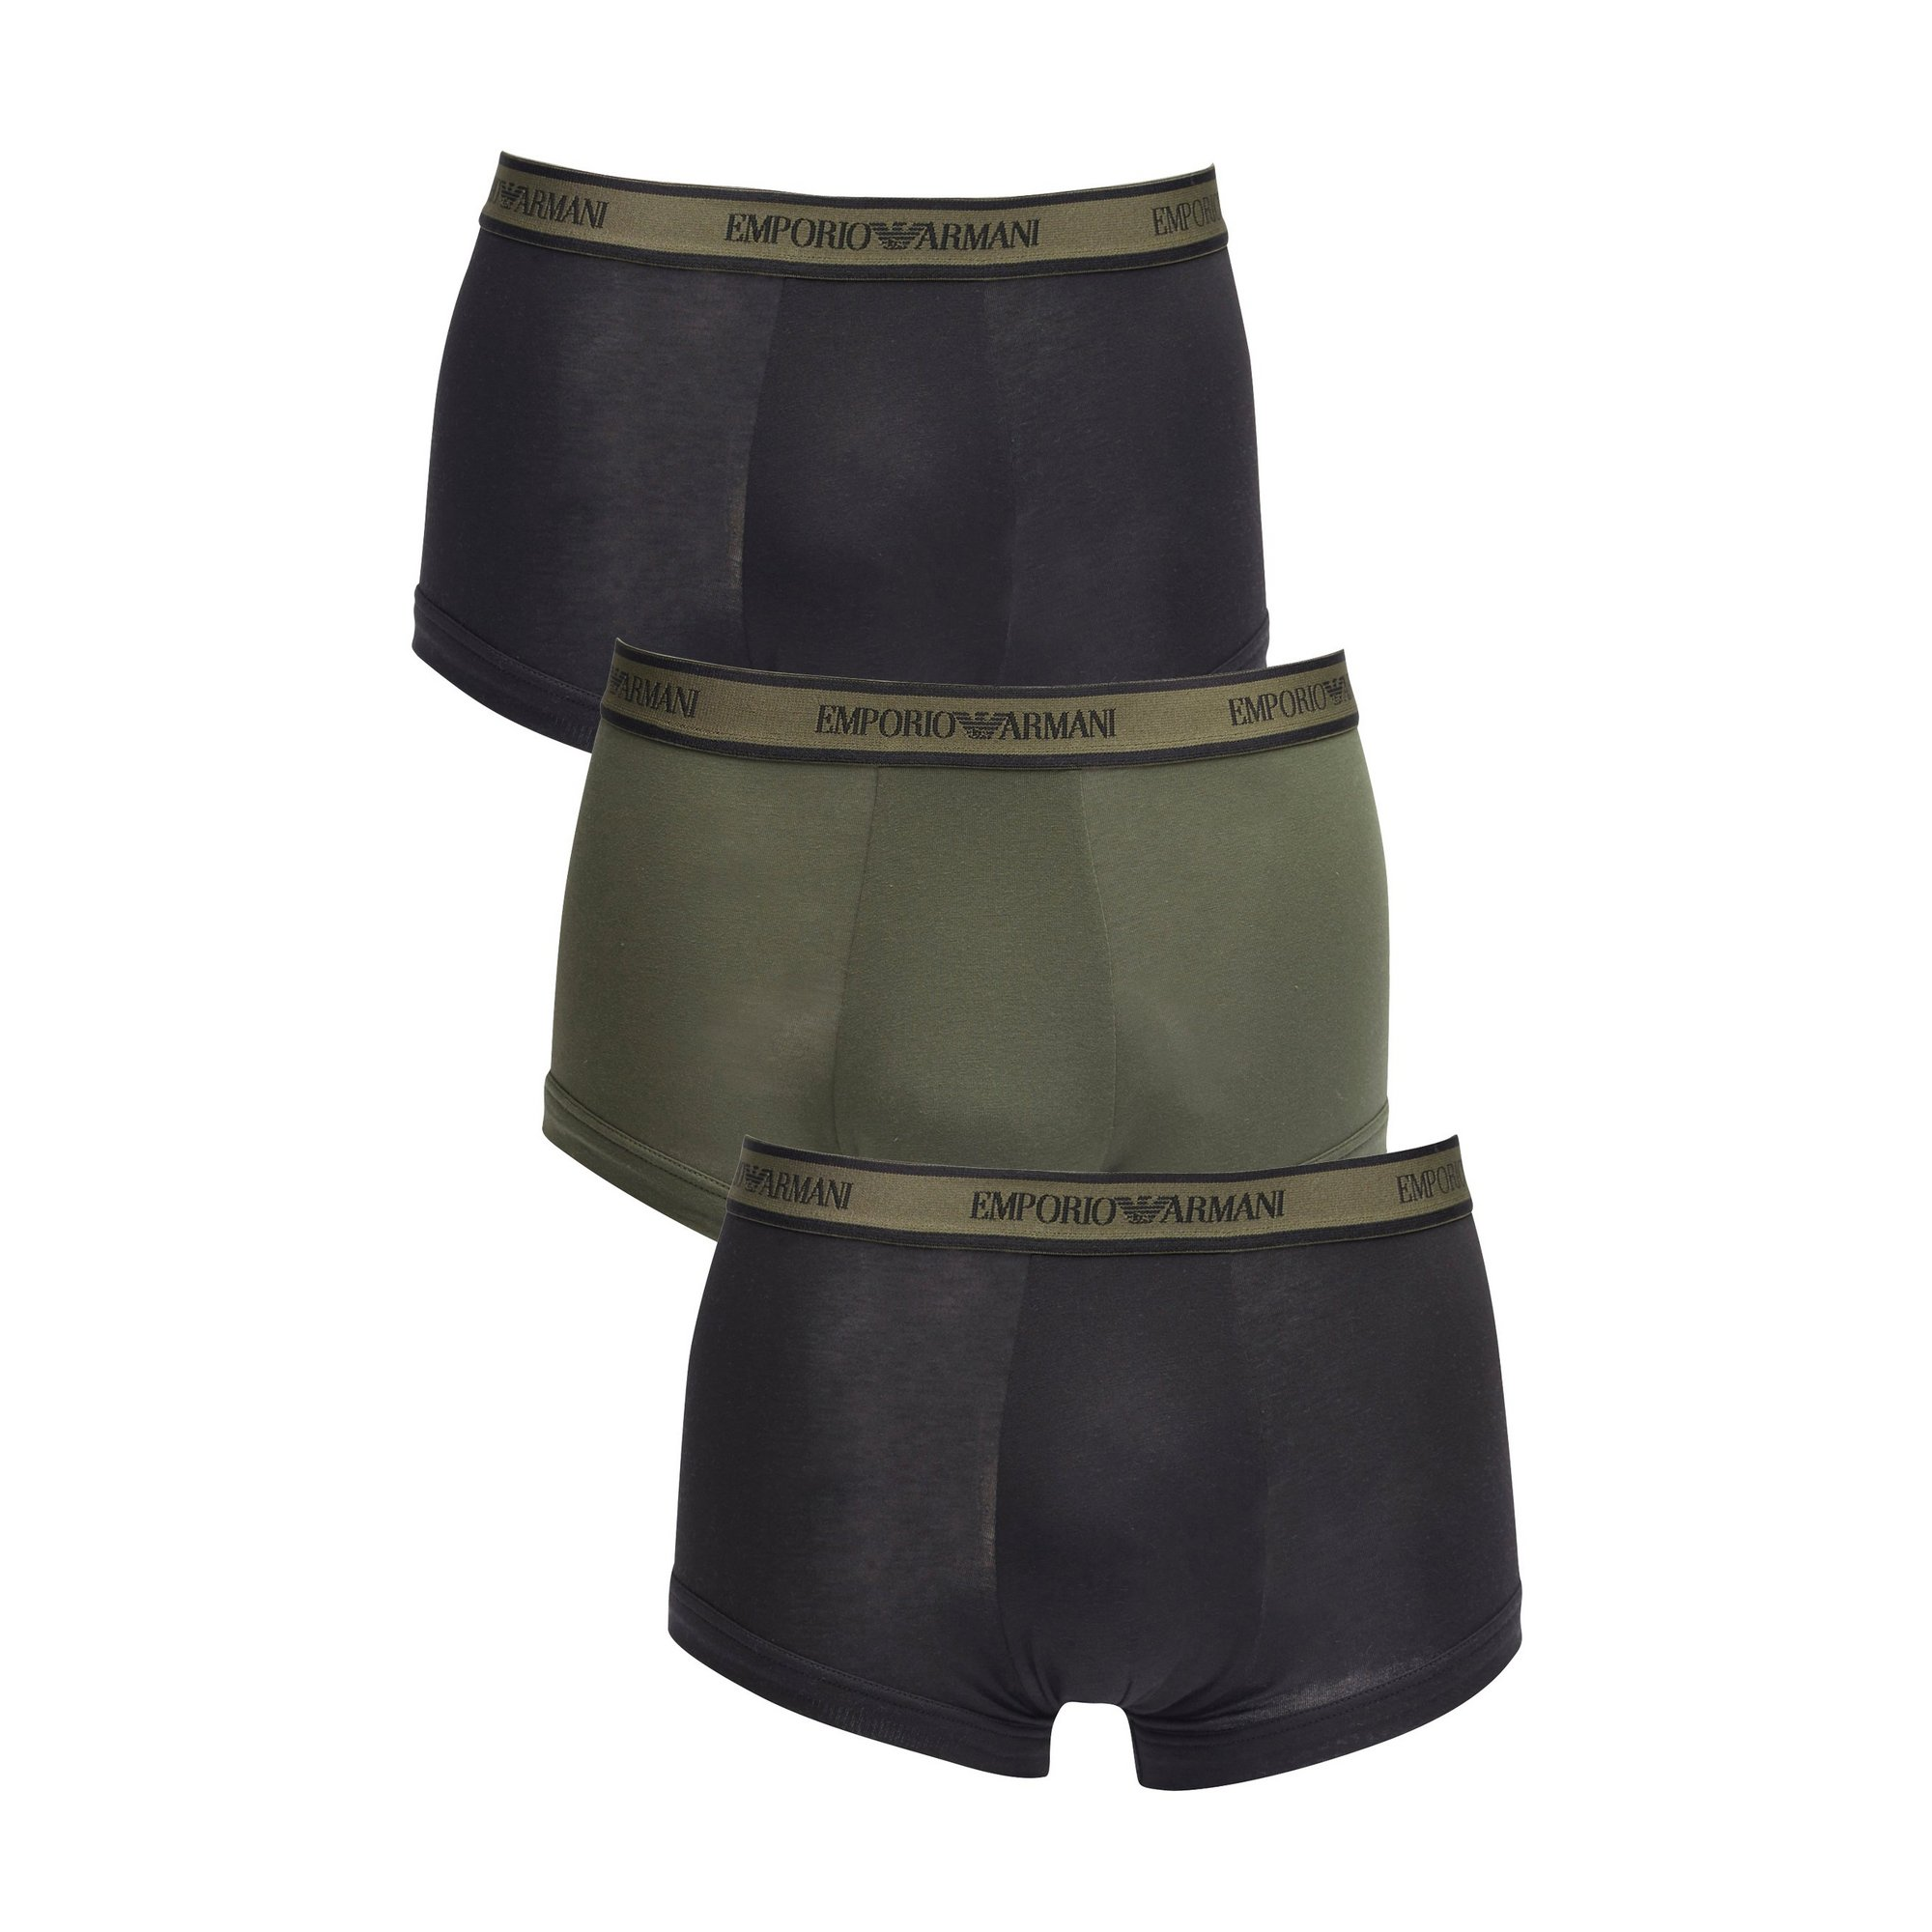 Image of Emporio Armani Pack Of 3 Trunks